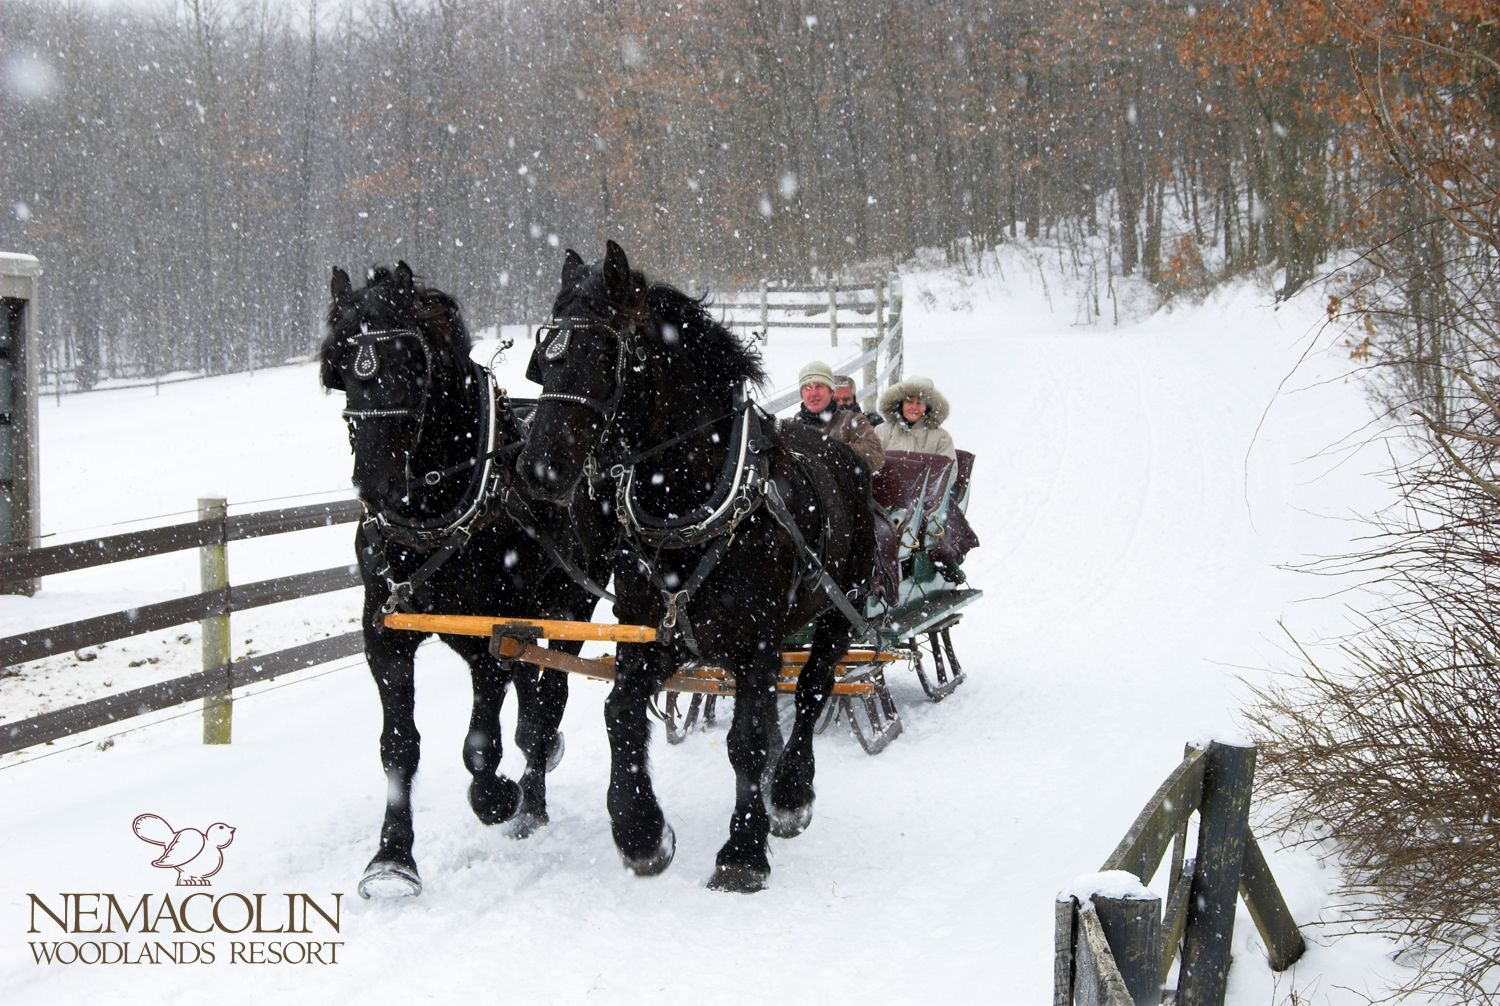 New Carriage Rides Property Tours And Shuttle Service Woodlands Sleigh Ride Horses